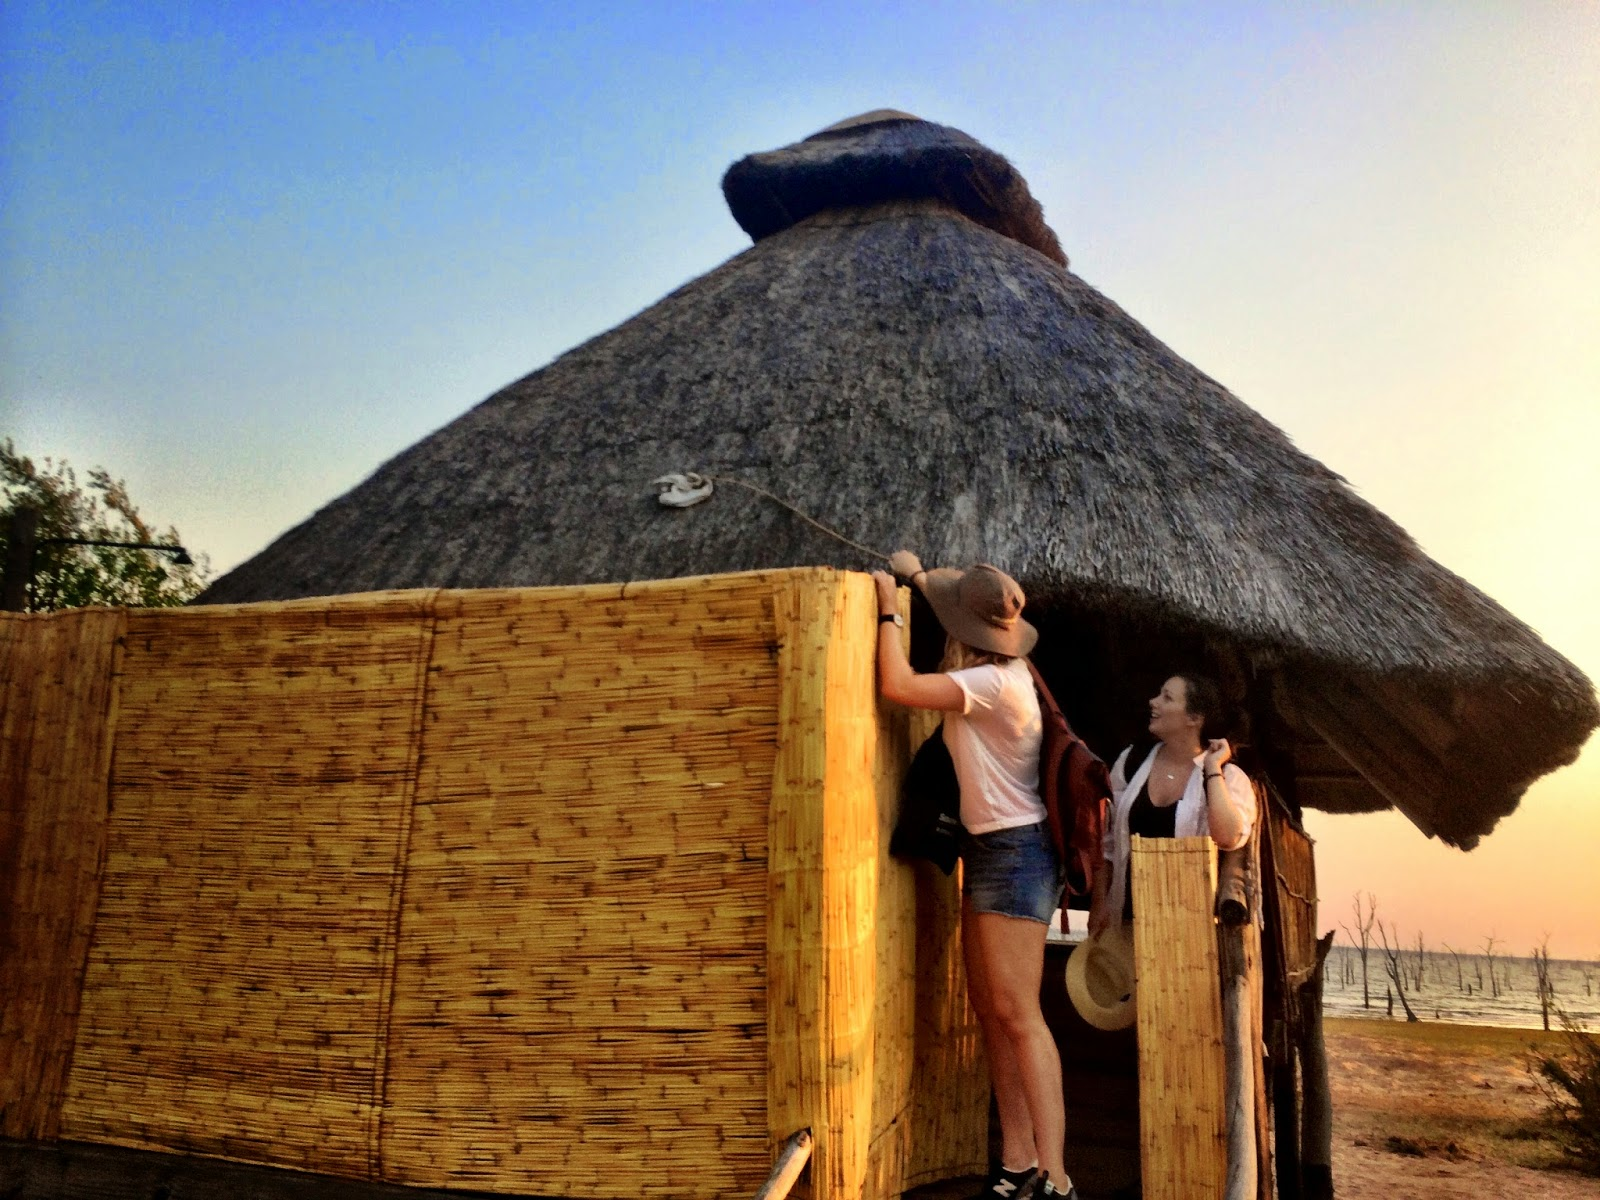 Bikini bottoms on the roof - Rhino Safari Camp